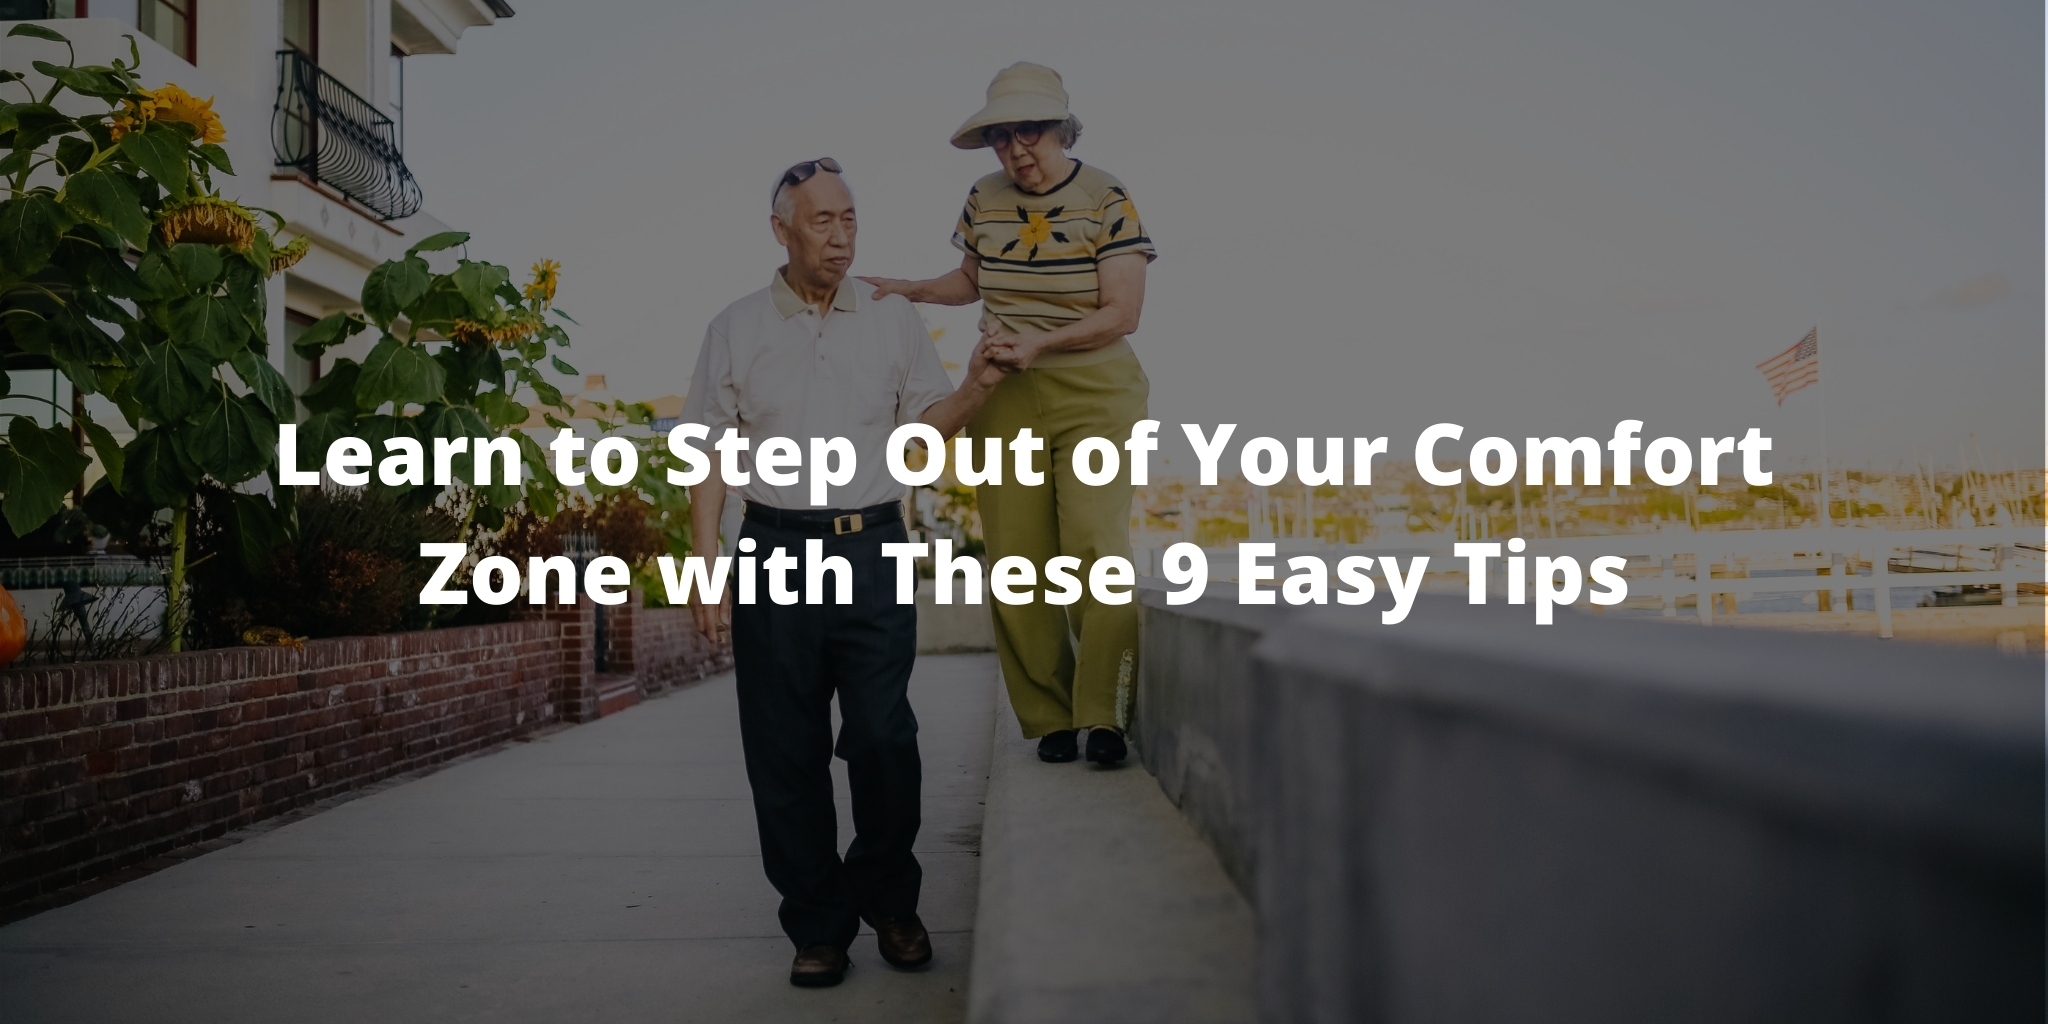 Learn to Step Out of Your Comfort Zone with These 9 Easy Tips